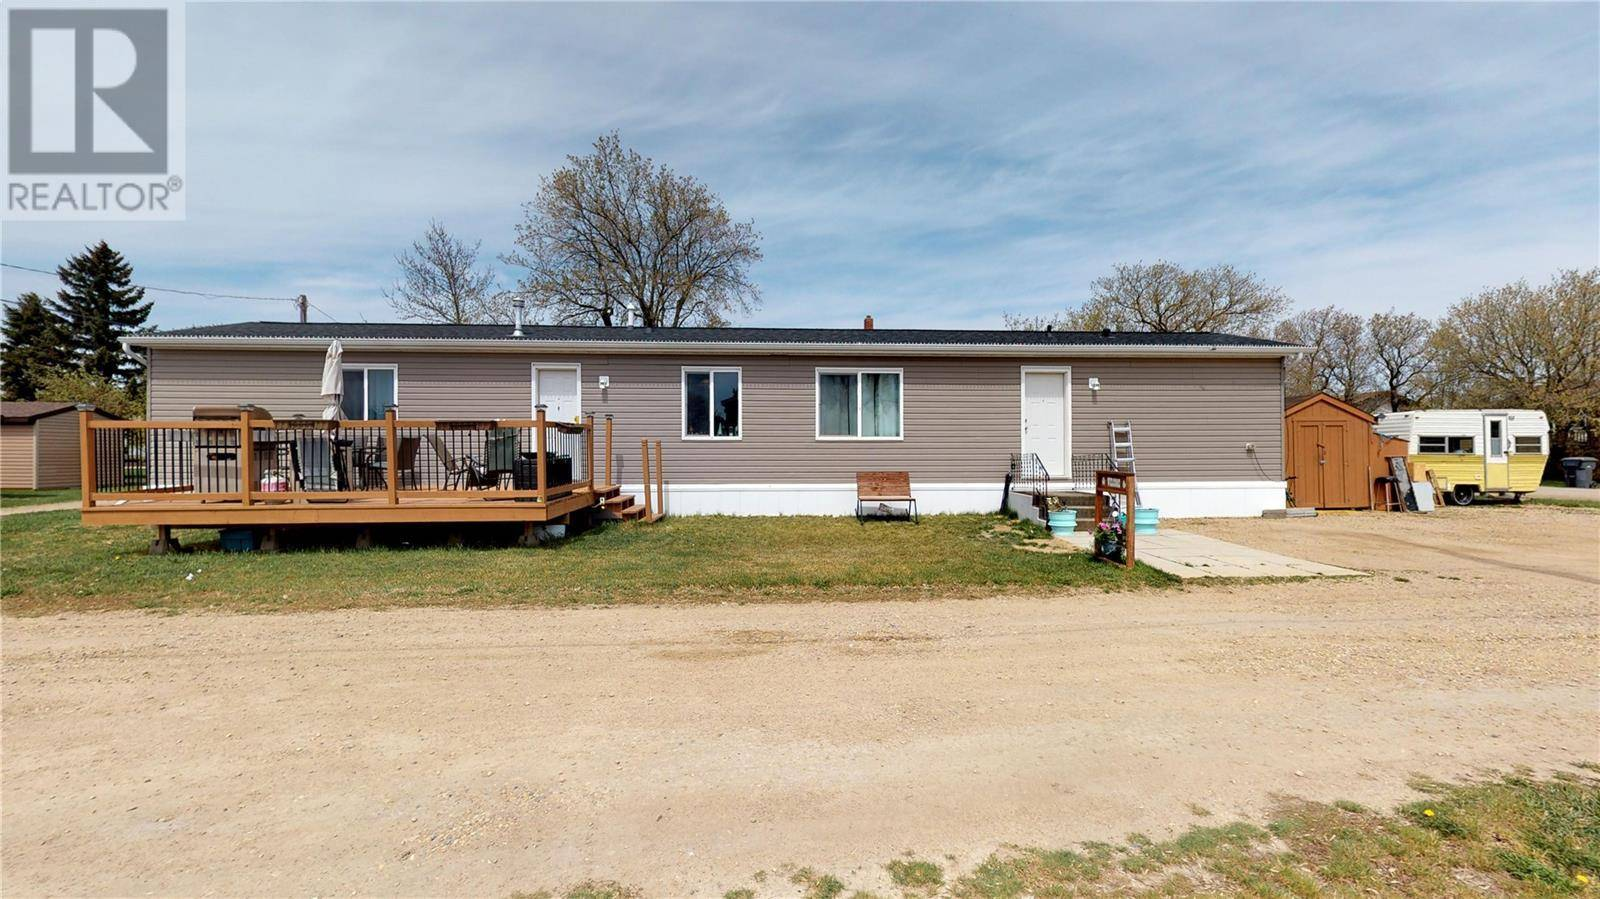 Home for sale at 101 Moose St Arcola Saskatchewan - MLS: SK760452